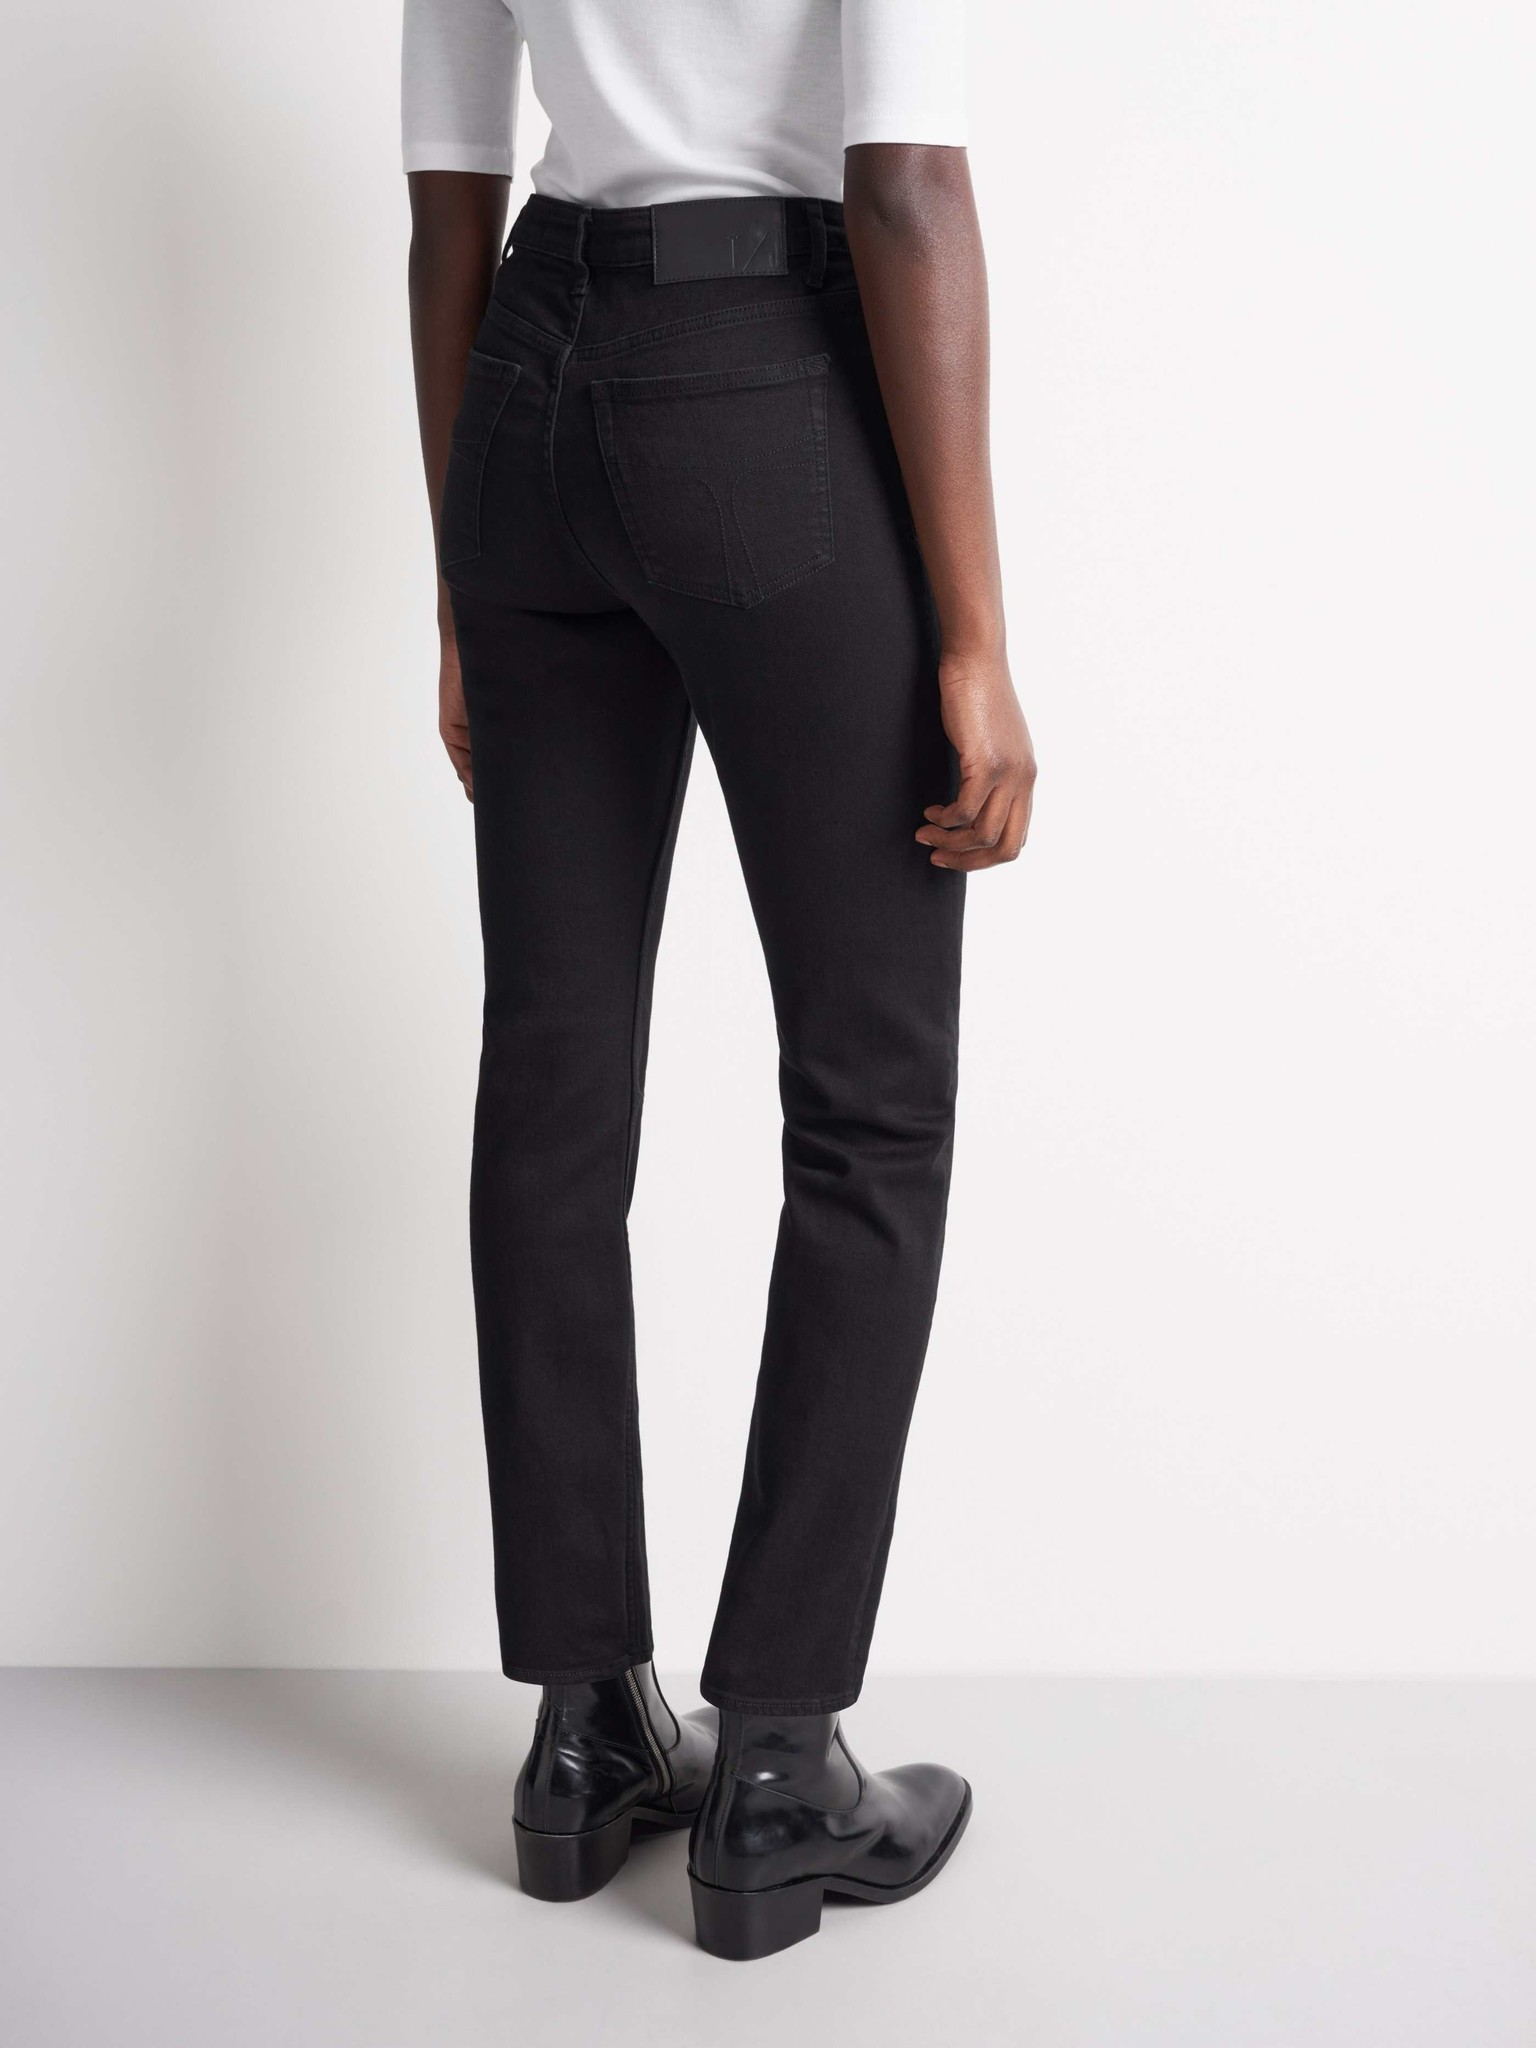 Meg High Waist Black Jeans-2